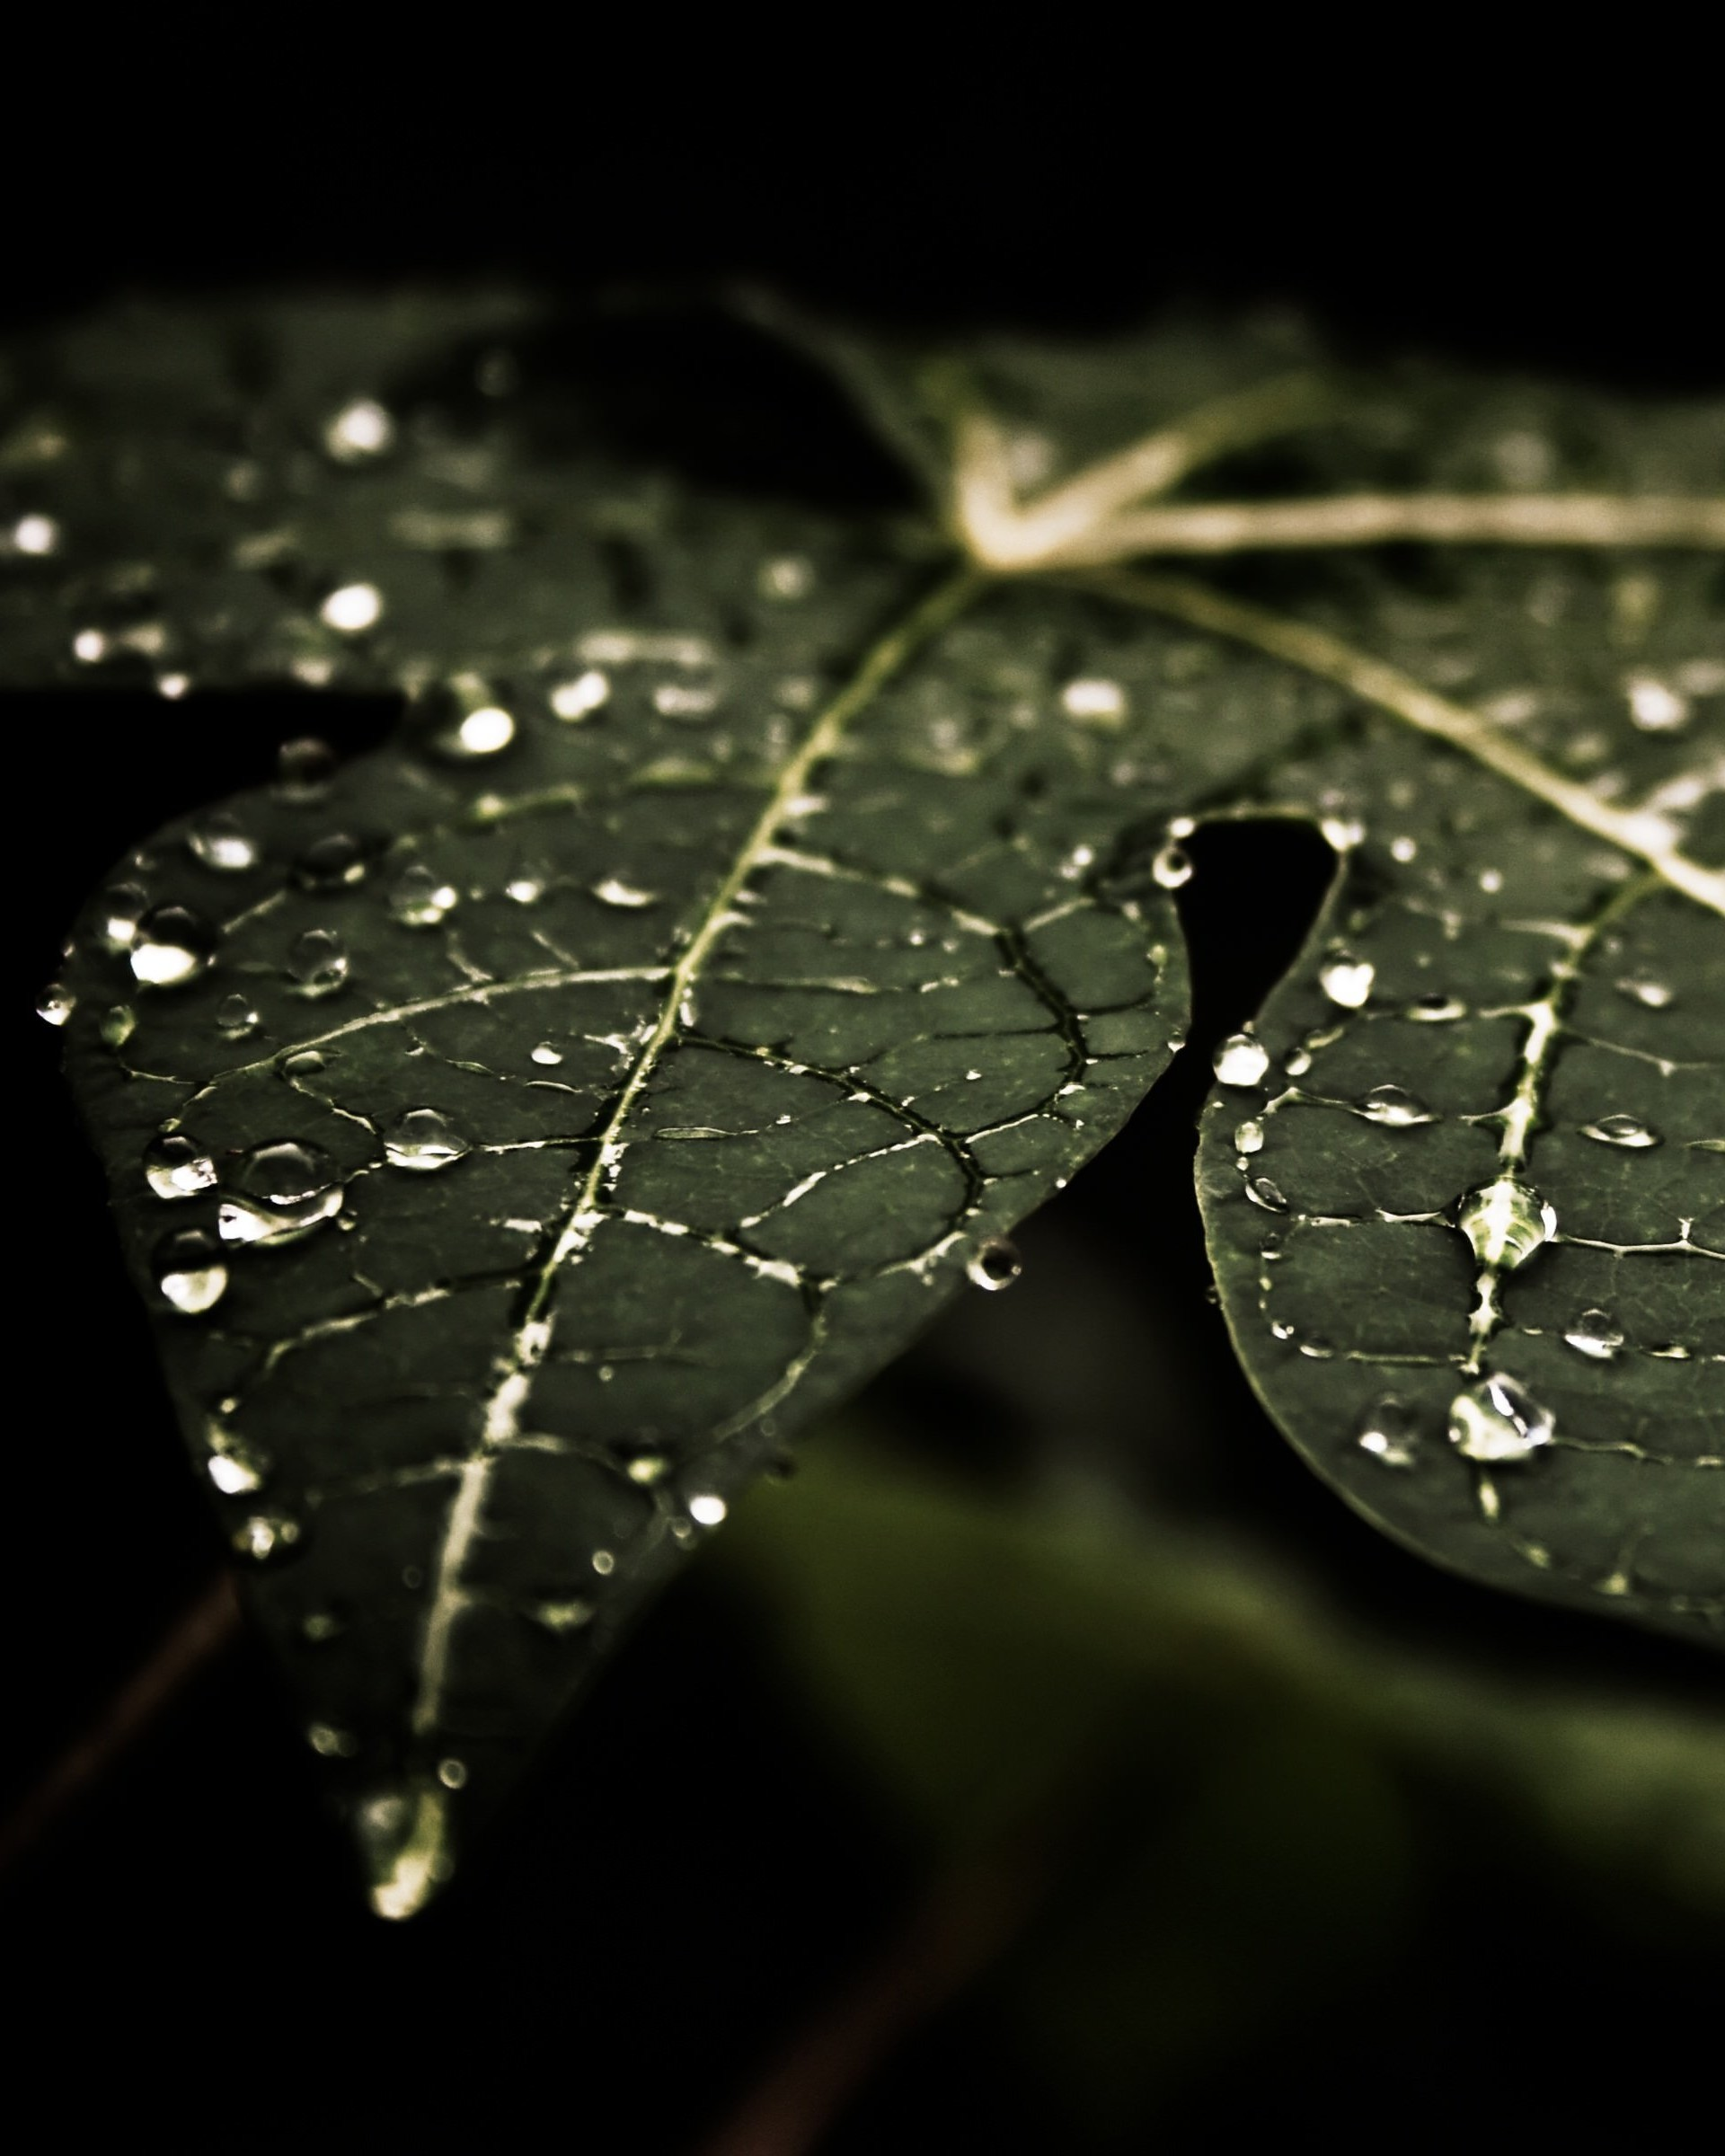 Droplets On Leaves Wallpaper for Google Nexus 7